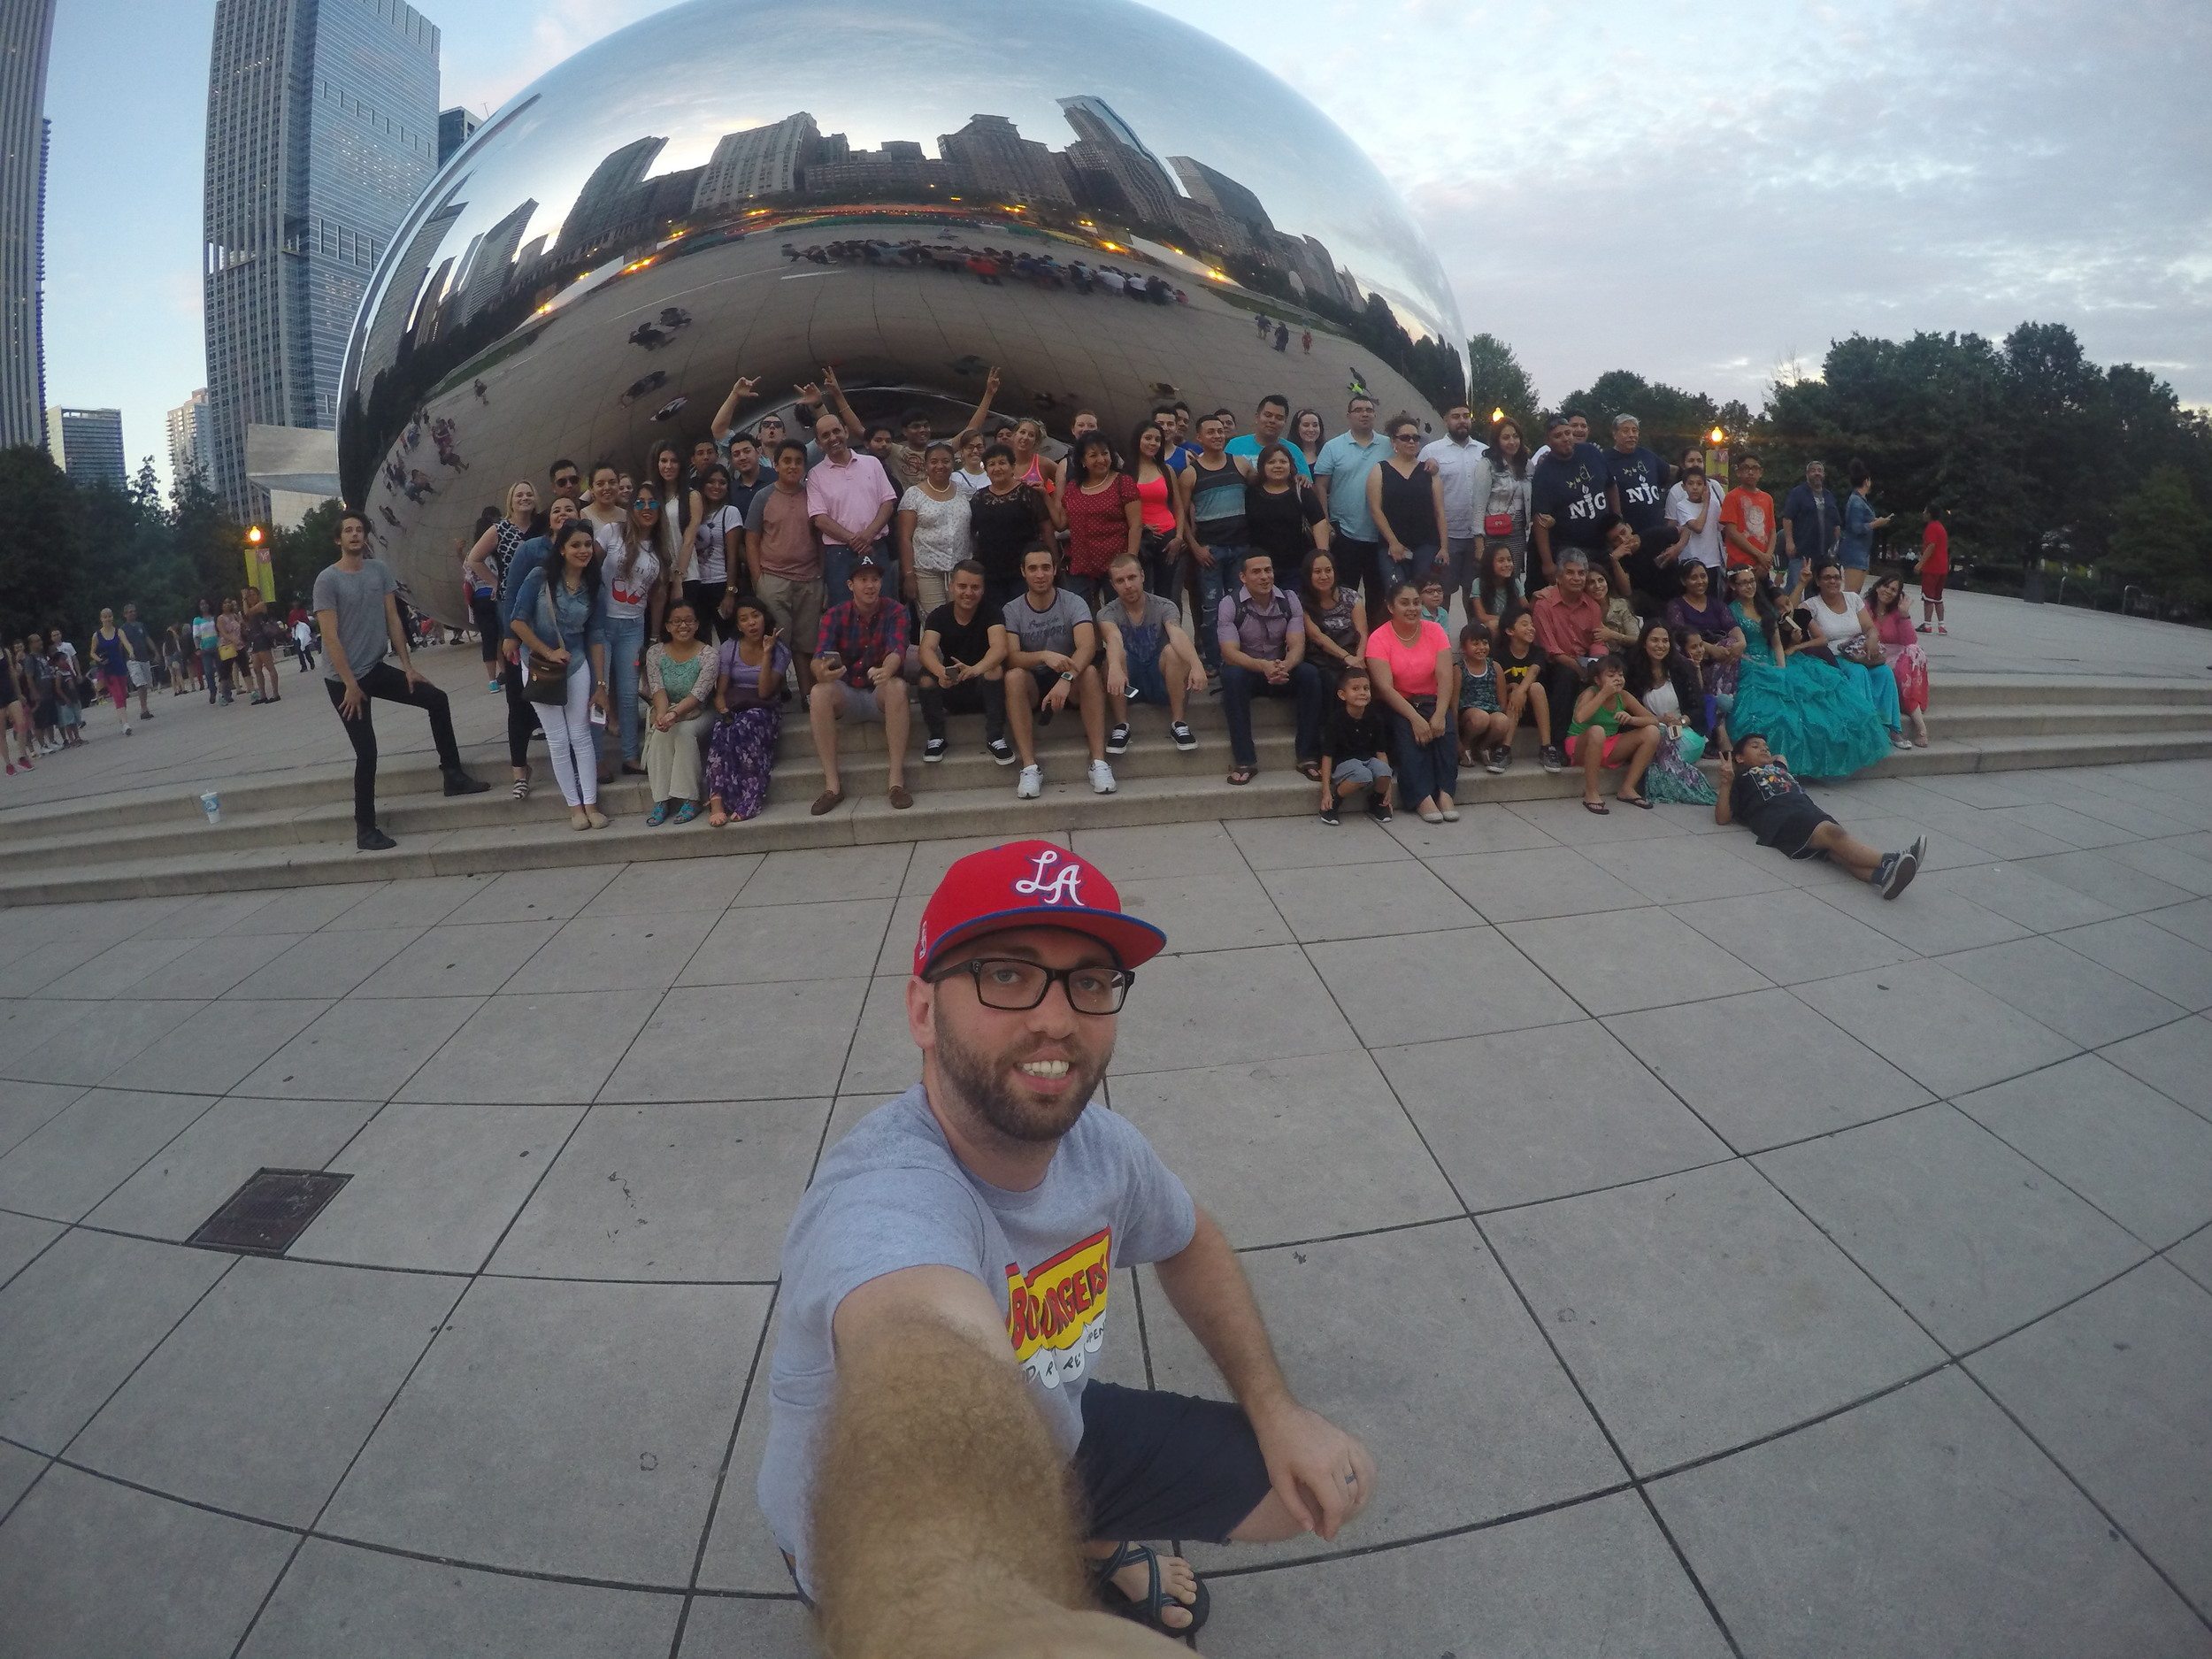 GOPRO selfie with about 100 complete strangers in downtown Chicago